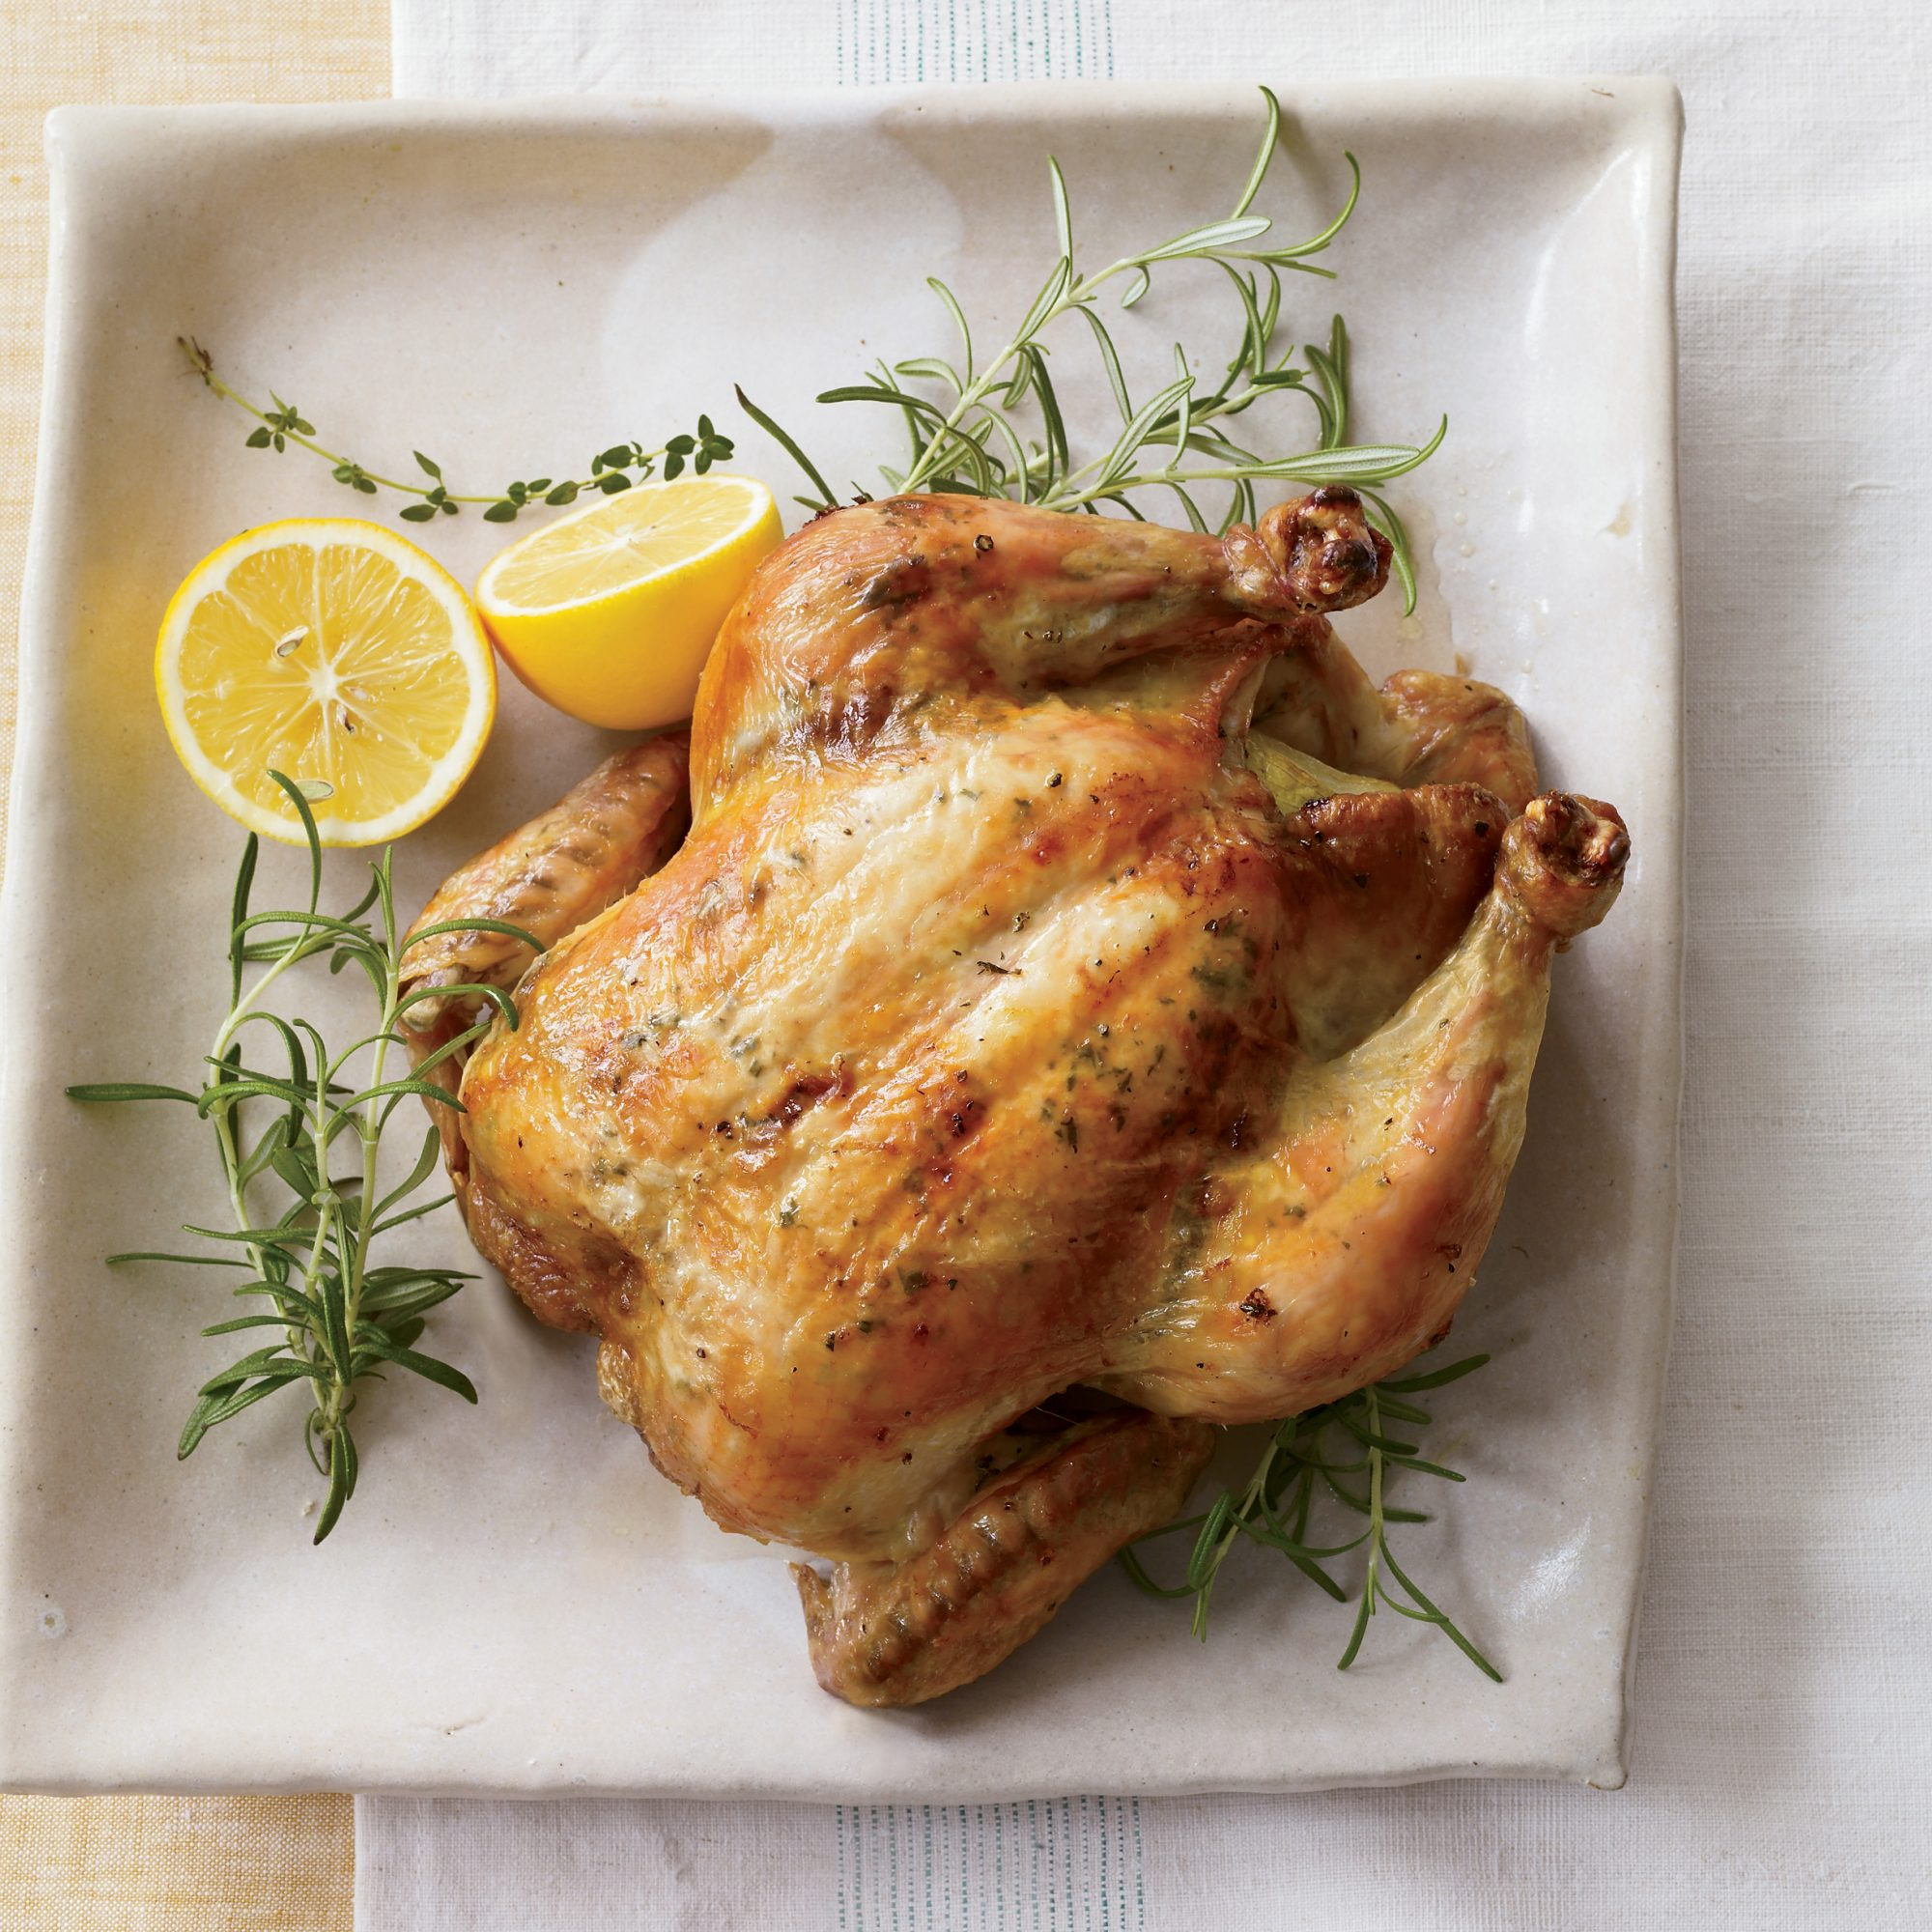 Herb-and-Lemon-Roasted Chicken Recipe